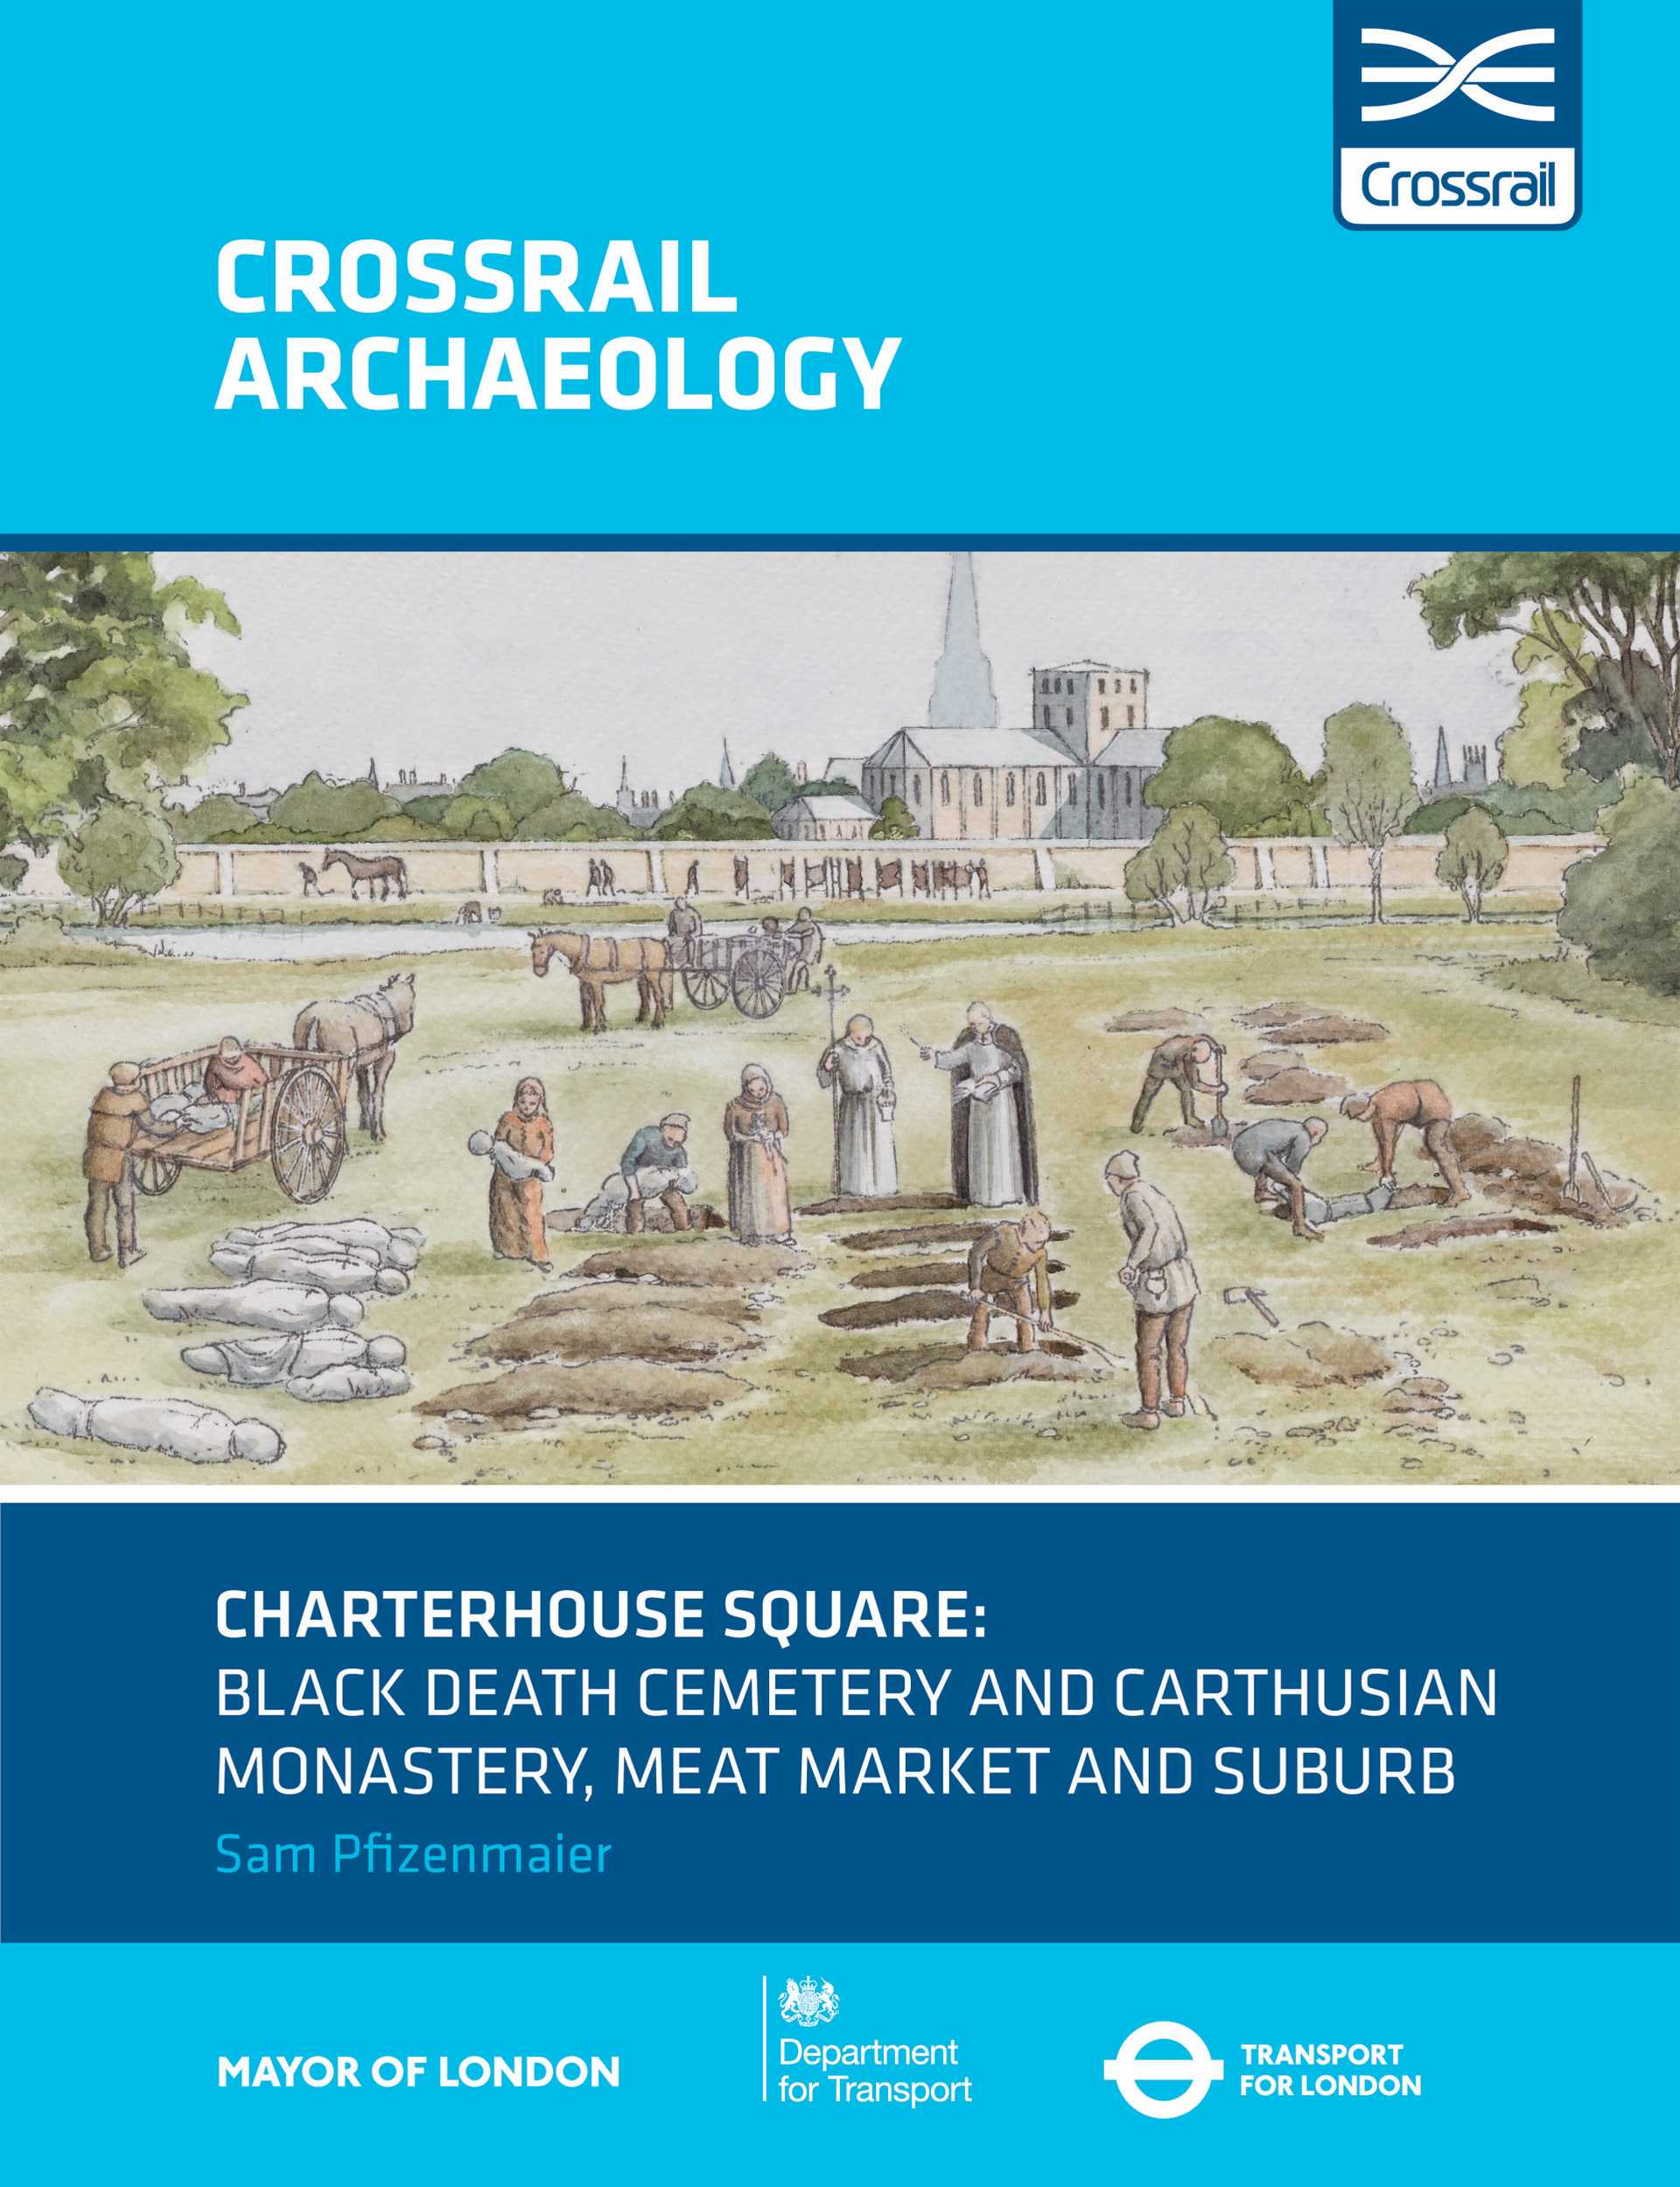 Charterhouse Square: Black Death cemetery and Carthusian monastery, Meat Market and suburb